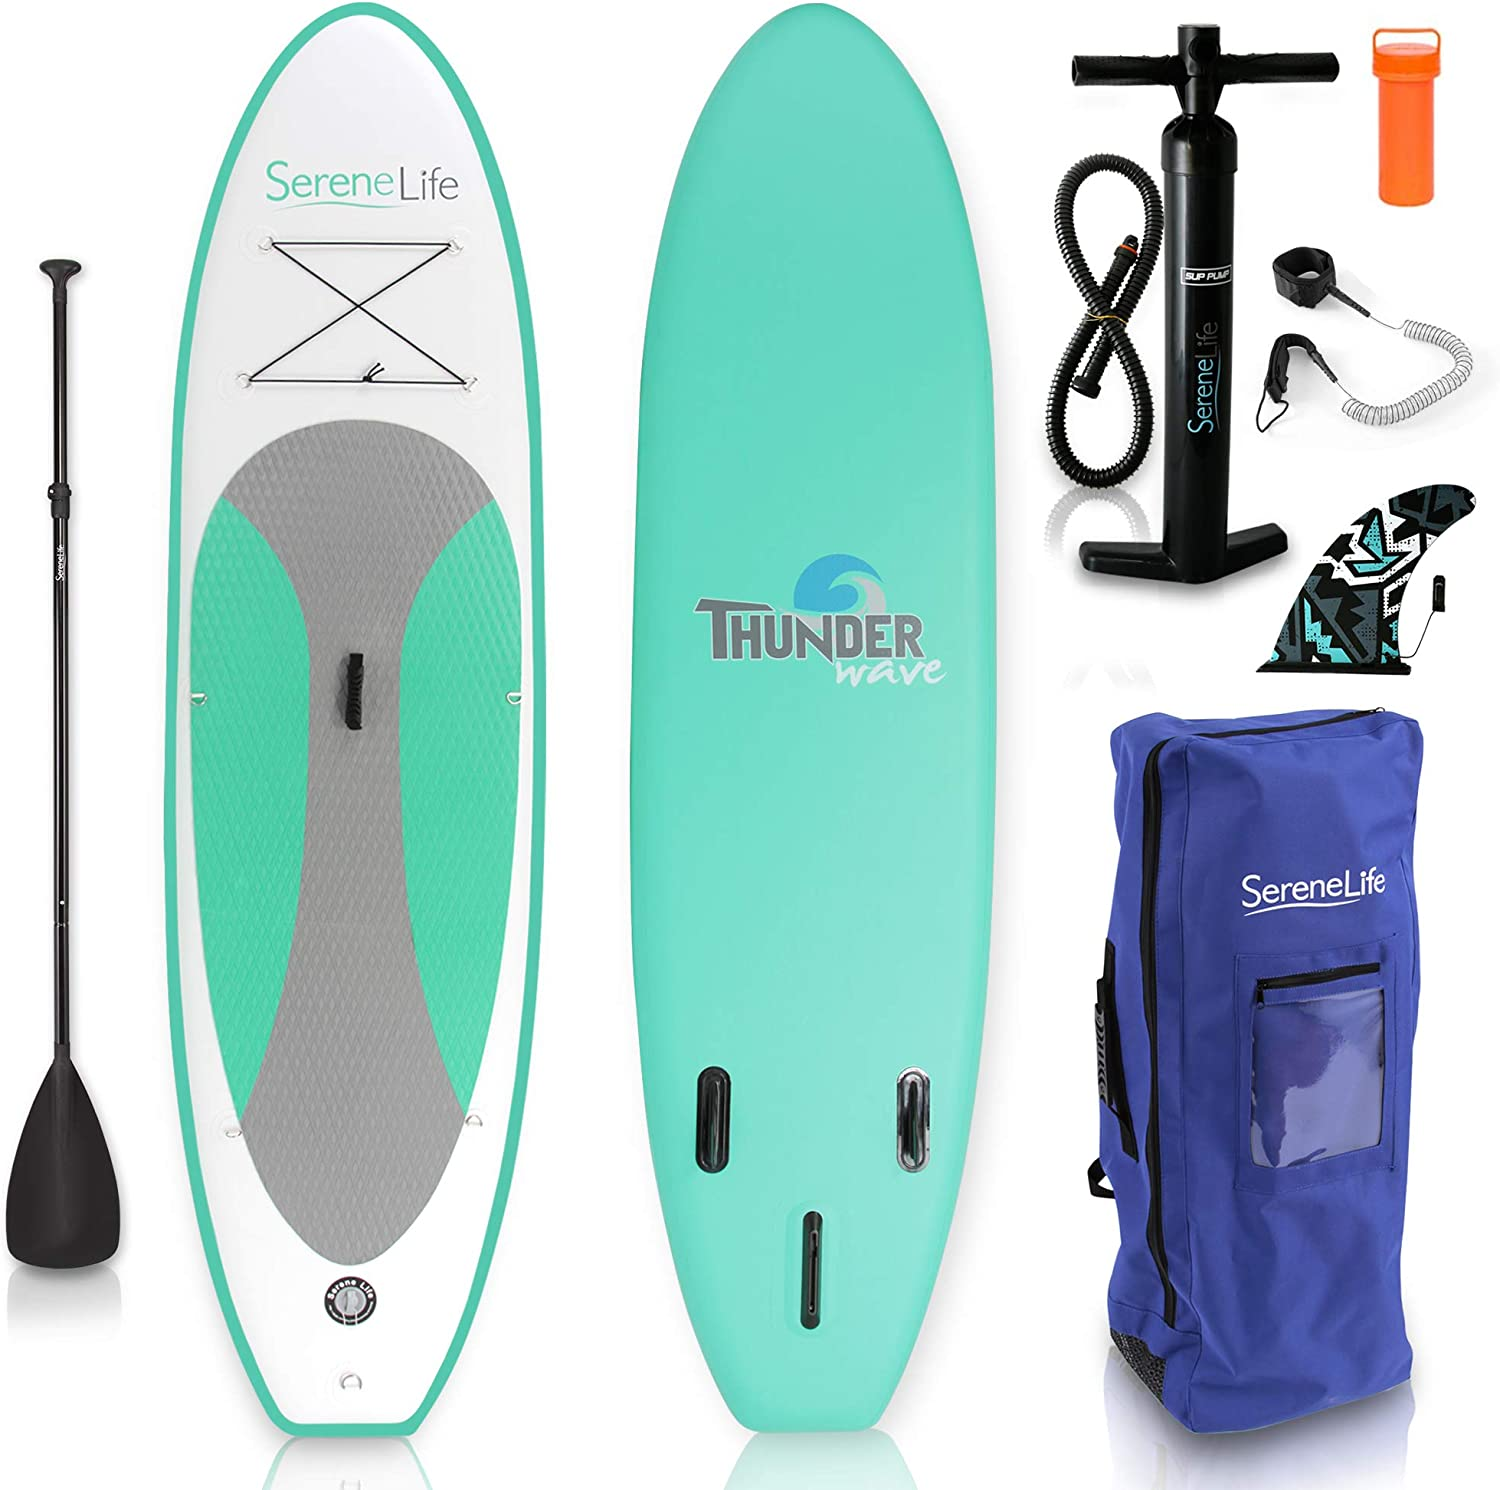 SereneLife Inflatable Stand Up Paddle Board 6 Inches Thick with Premium SUP Accessories Carry Bag Wide Stance, Bottom Fin for Paddling, Surf Control, Non-Slip Deck Youth Adult Standing Boat